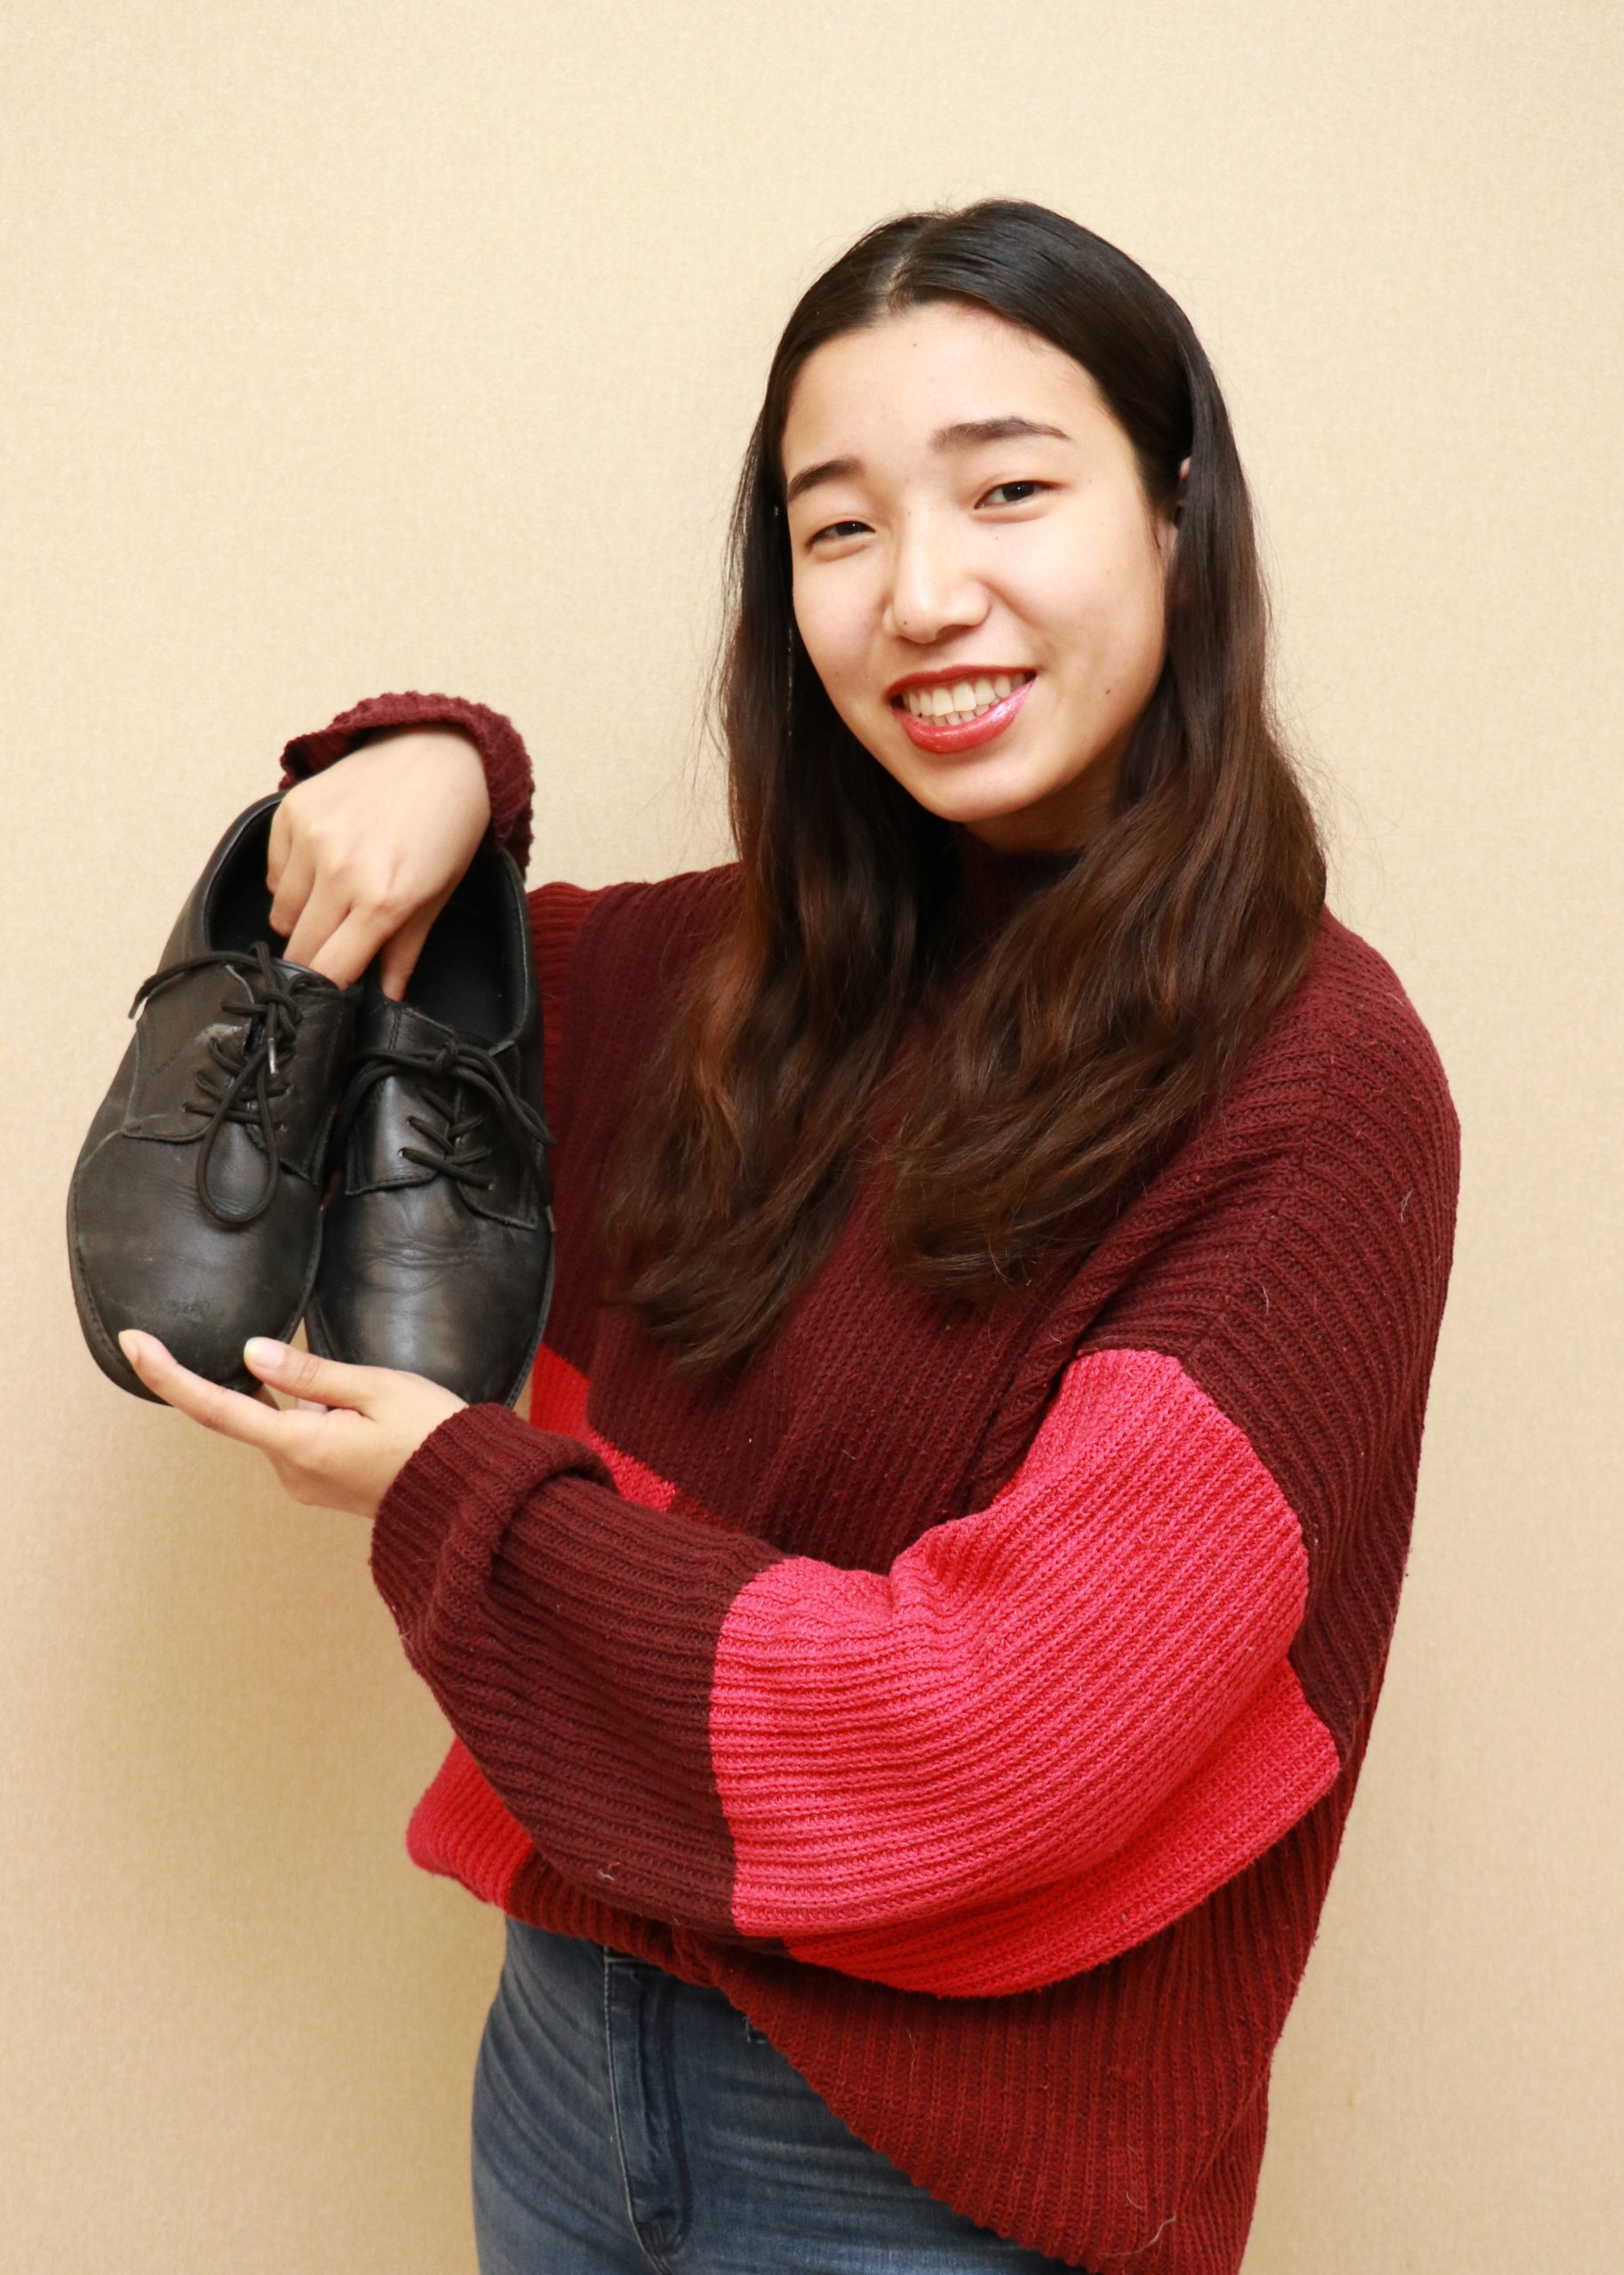 Choden holding her bata shoes